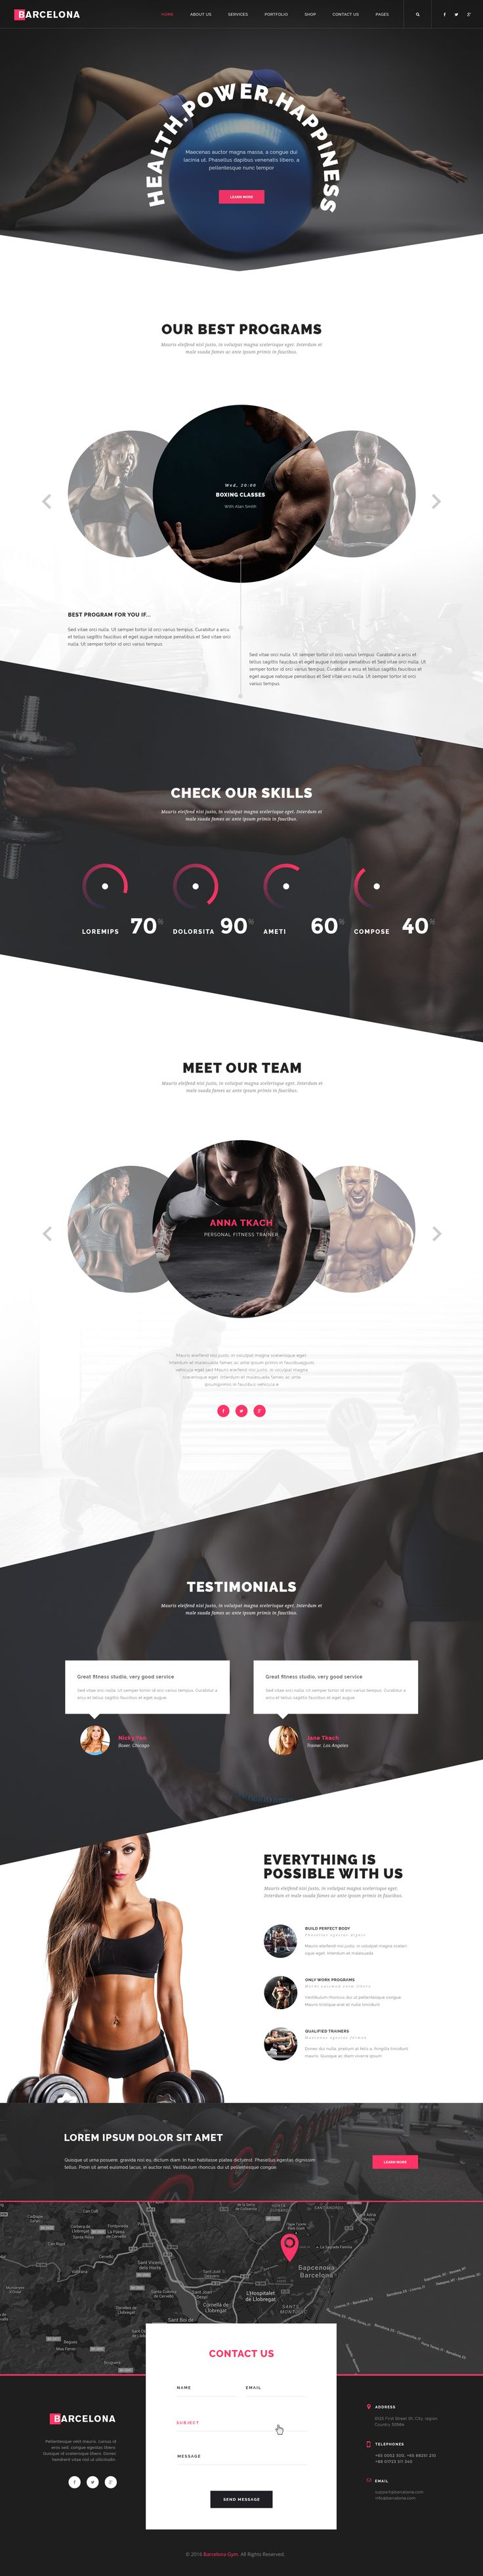 Barcelona - Sport, Gym, Fitness Template - Download: http://themeforest.net/item/barcelona-sport-gym-fitness-template/15921091?ref=sinzo #PSD #Templates